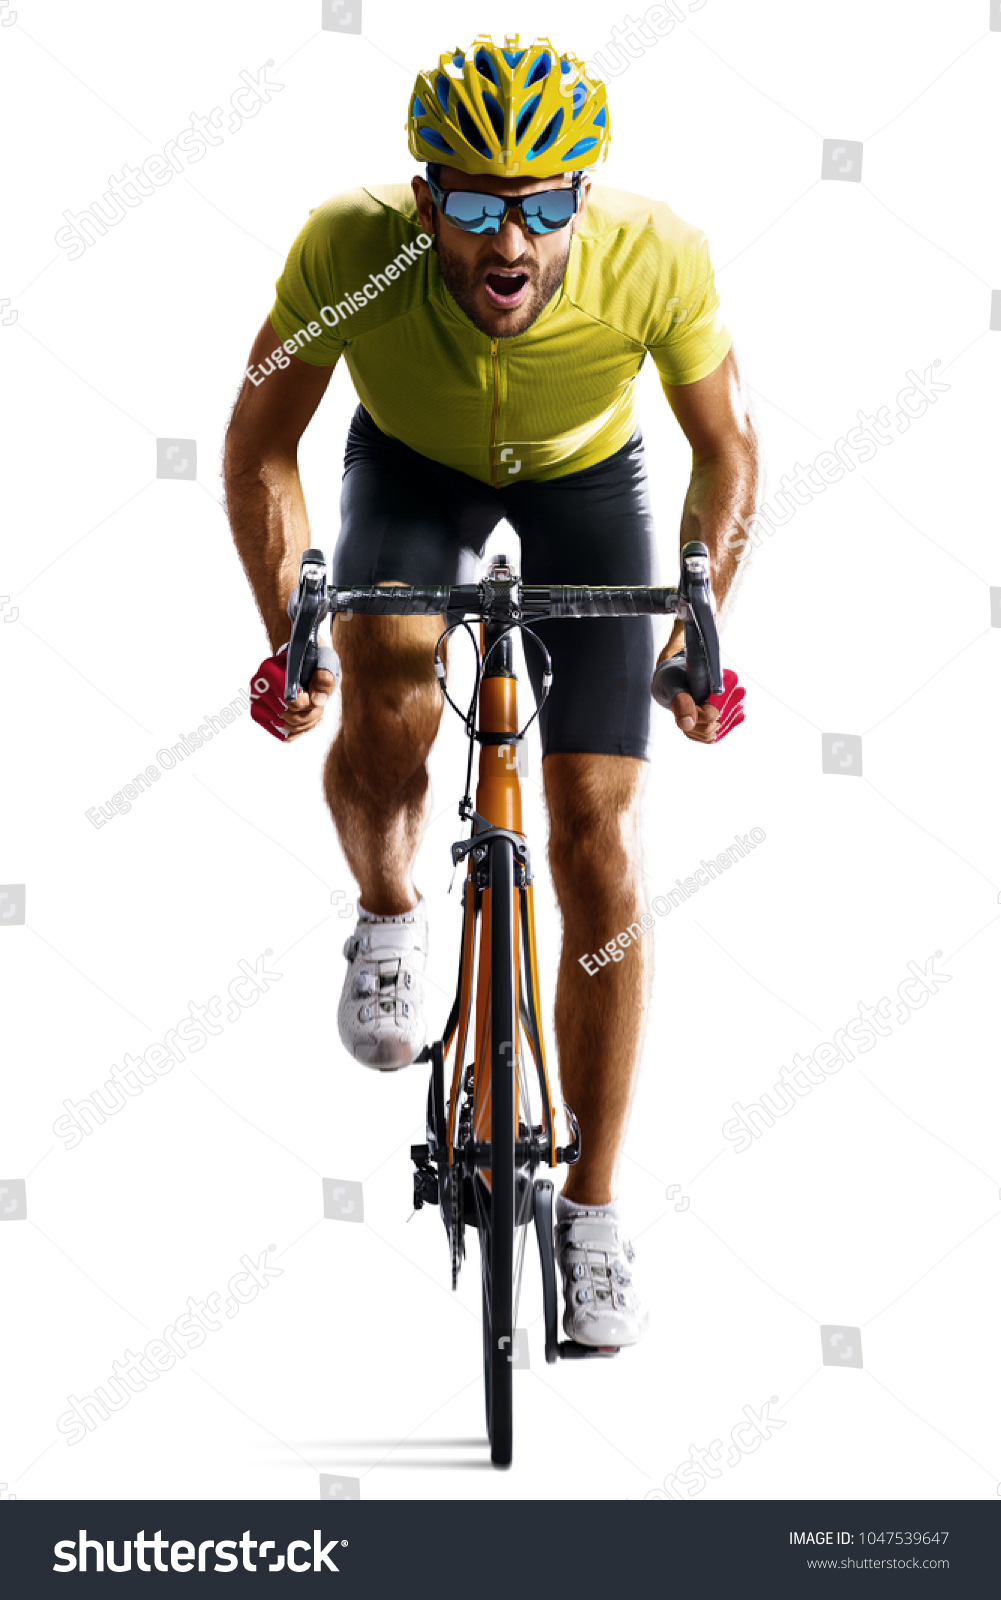 Professinal road bicycle racer isolated in motion on white #1047539647